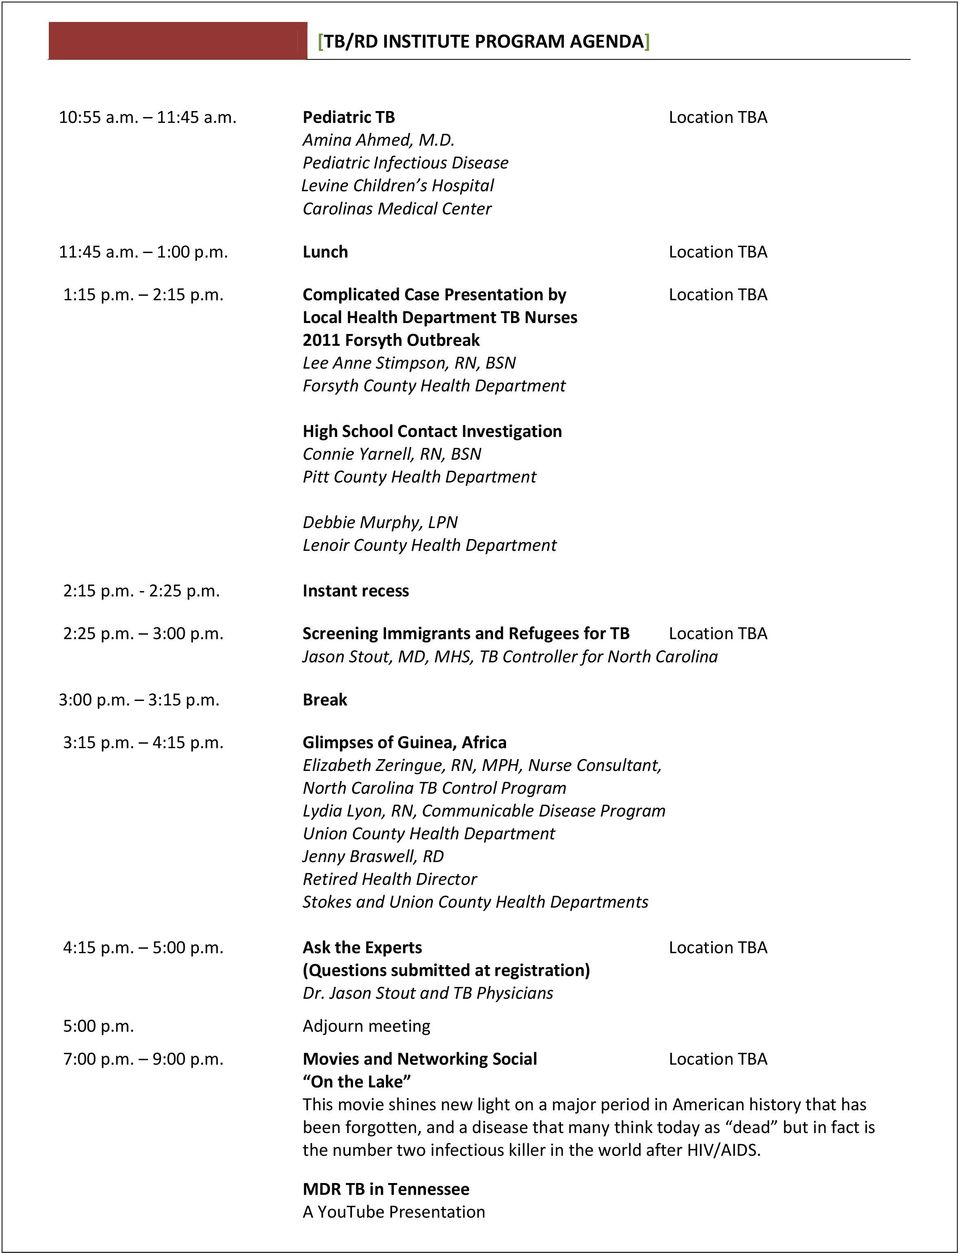 m. 3:00 p.m. Screening Immigrants and Refugees for TB Location TBA Jason Stout, MD, MHS, TB Controller for North Carolina 3:00 p.m. 3:15 p.m. Break 3:15 p.m. 4:15 p.m. Glimpses of Guinea, Africa